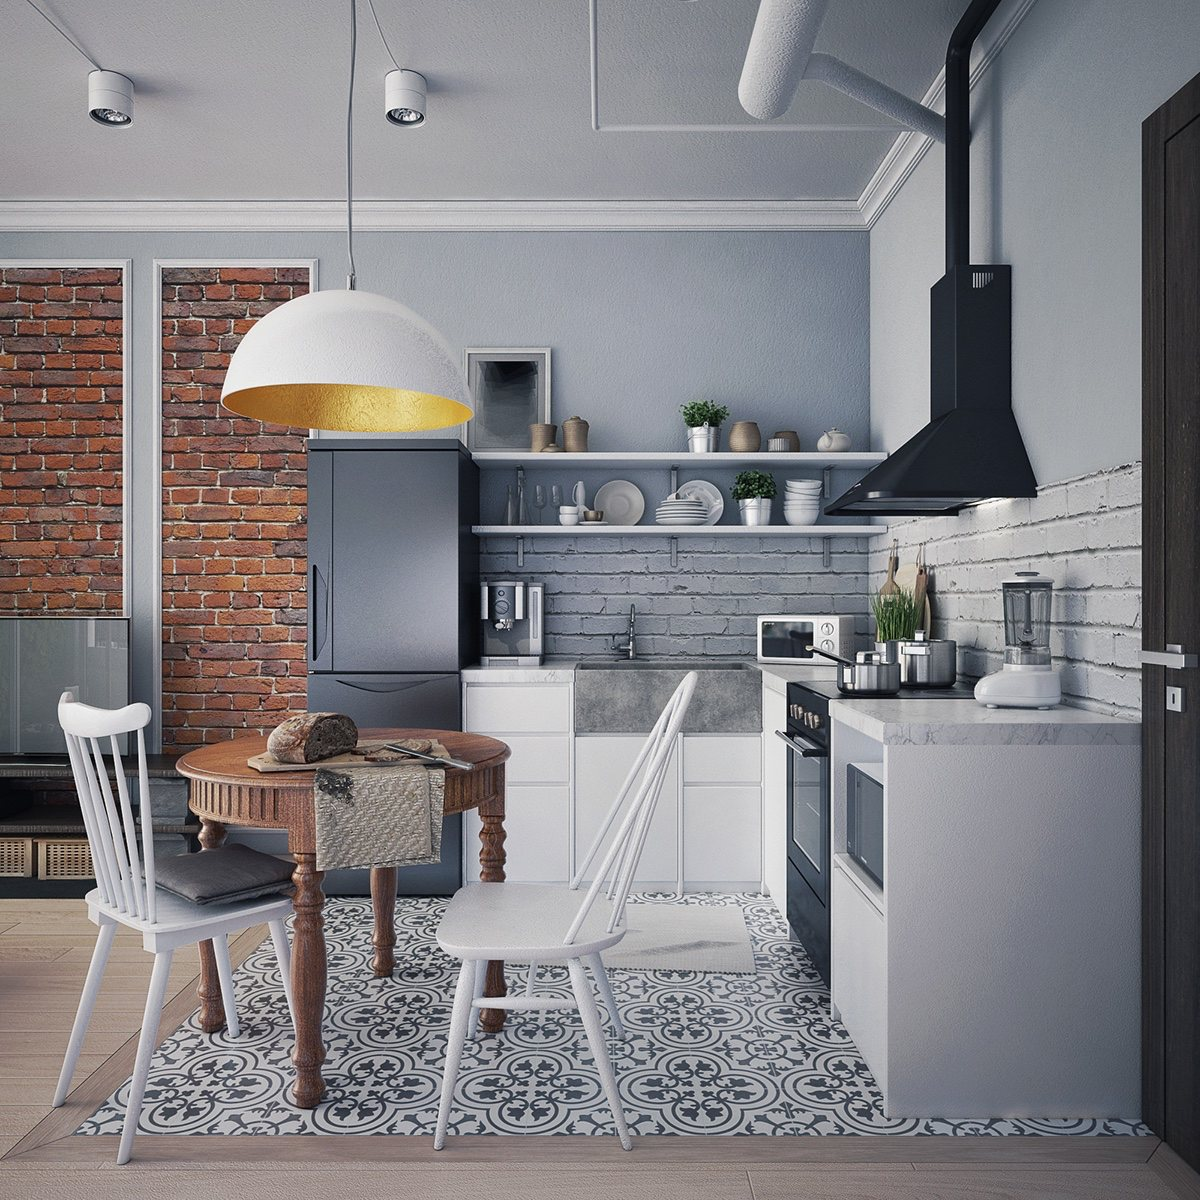 4 first home interior ideas with a scandinavian twist Kitchen design light grey